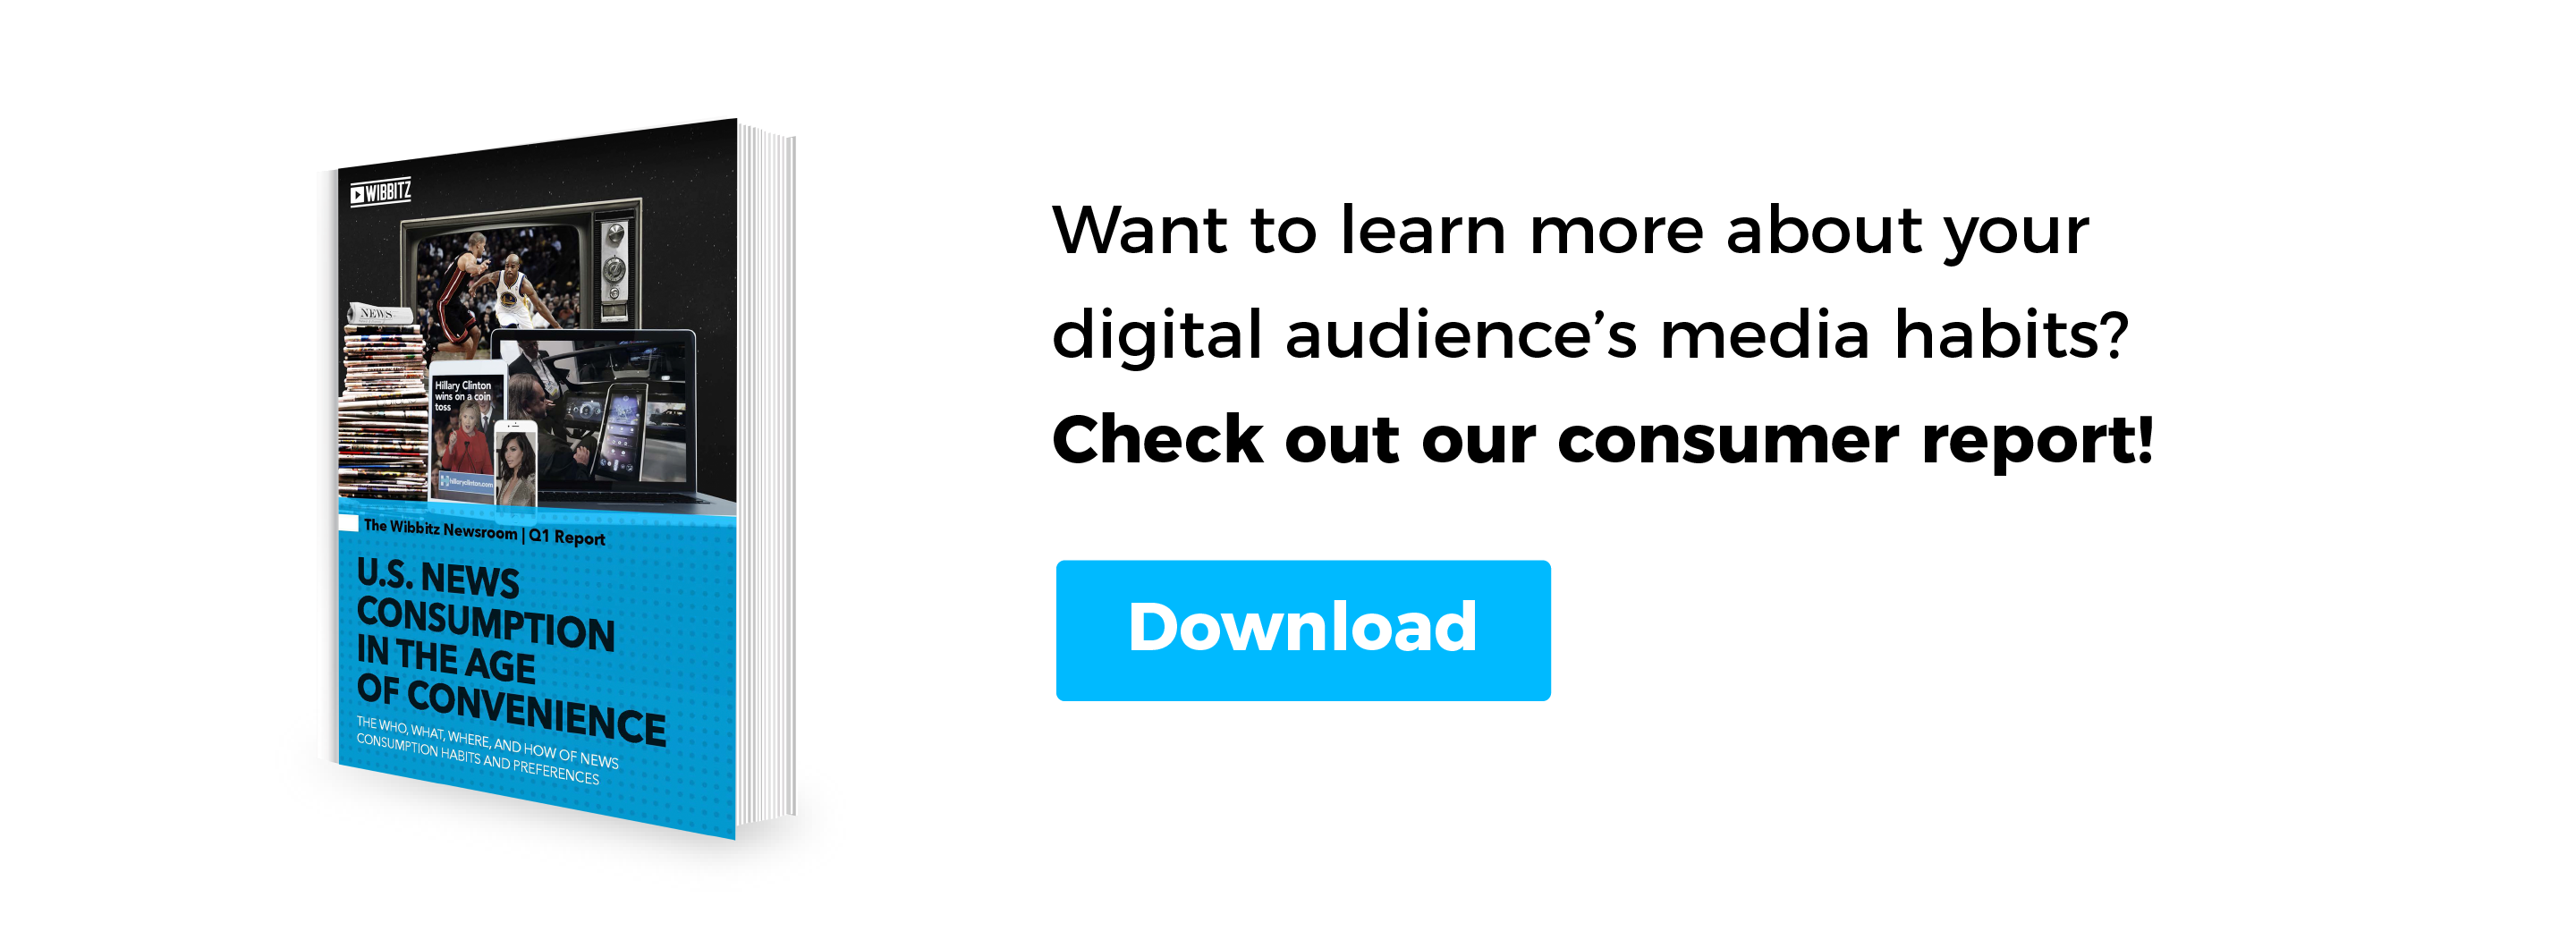 Want to learn more about your digital audience's media habits? Download our consumer report!